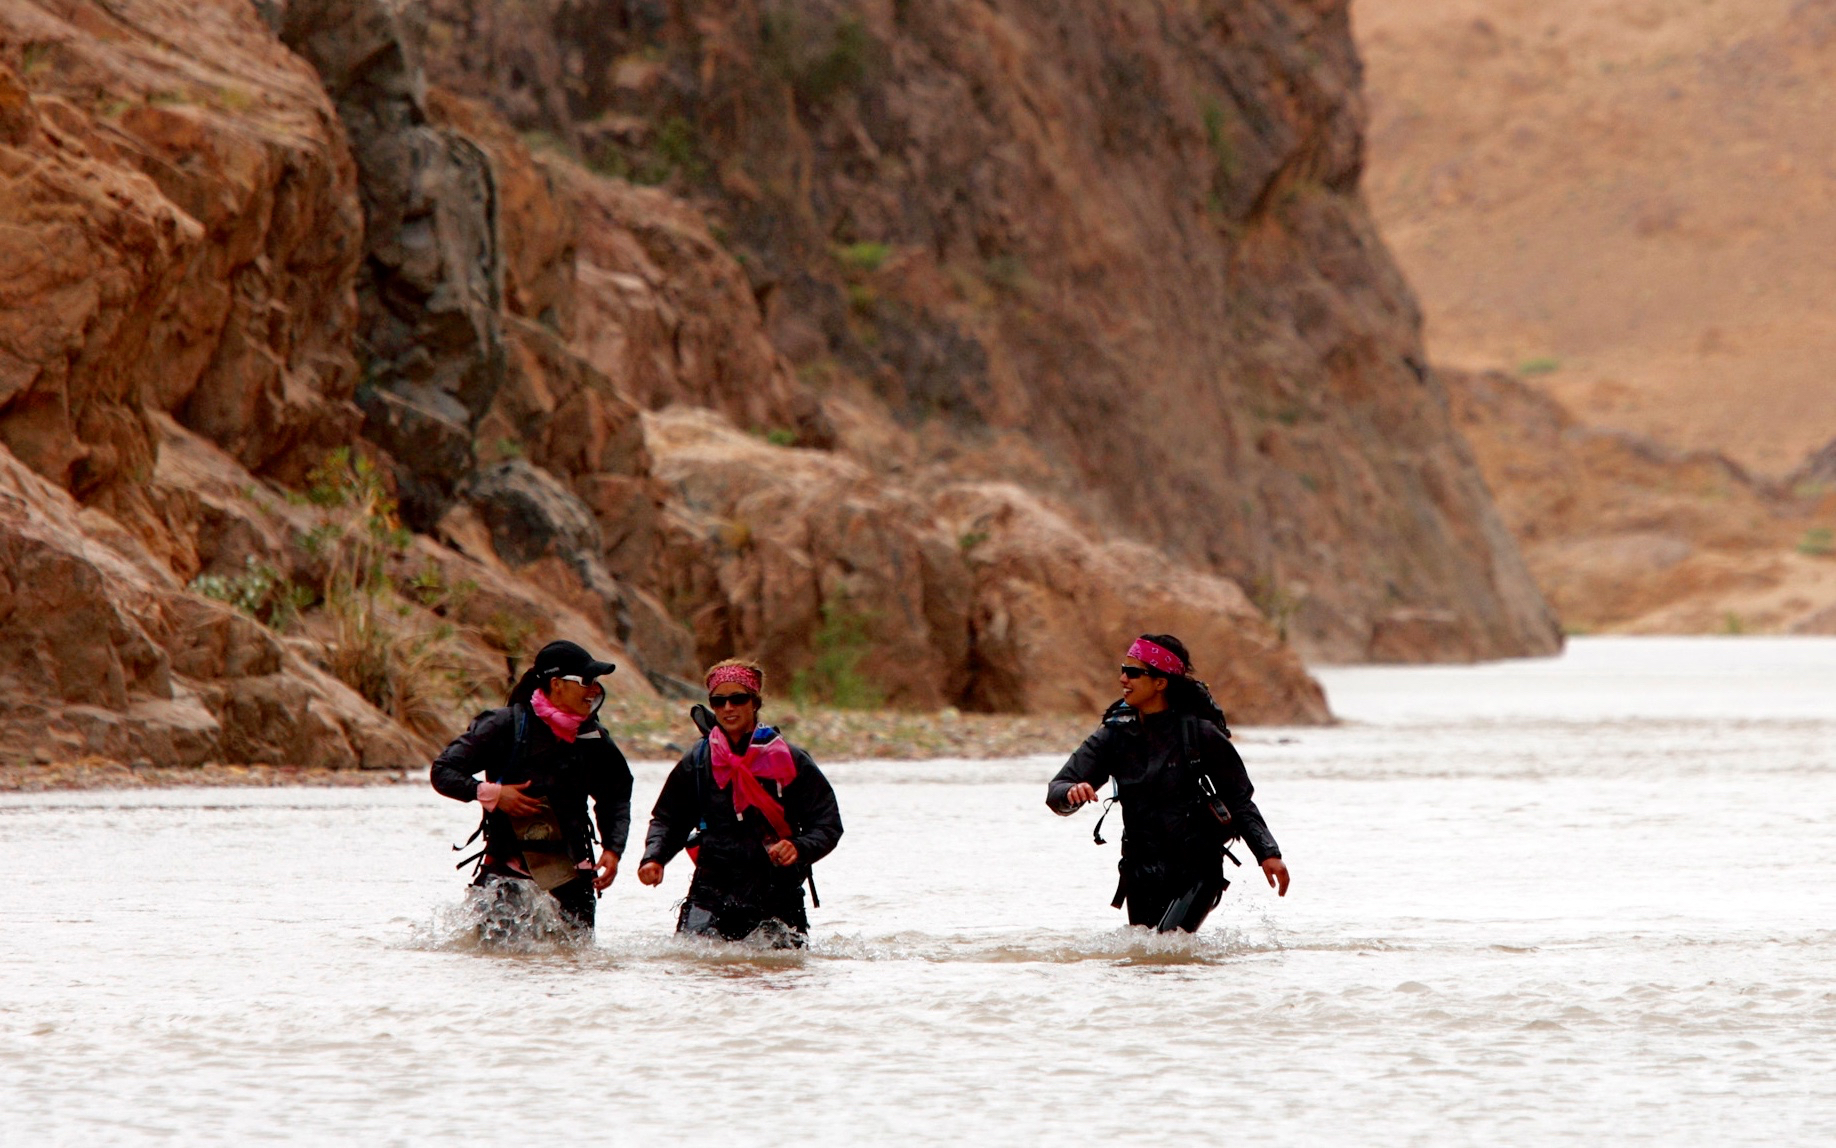 The California Girls on ABC's Expedition Impossible